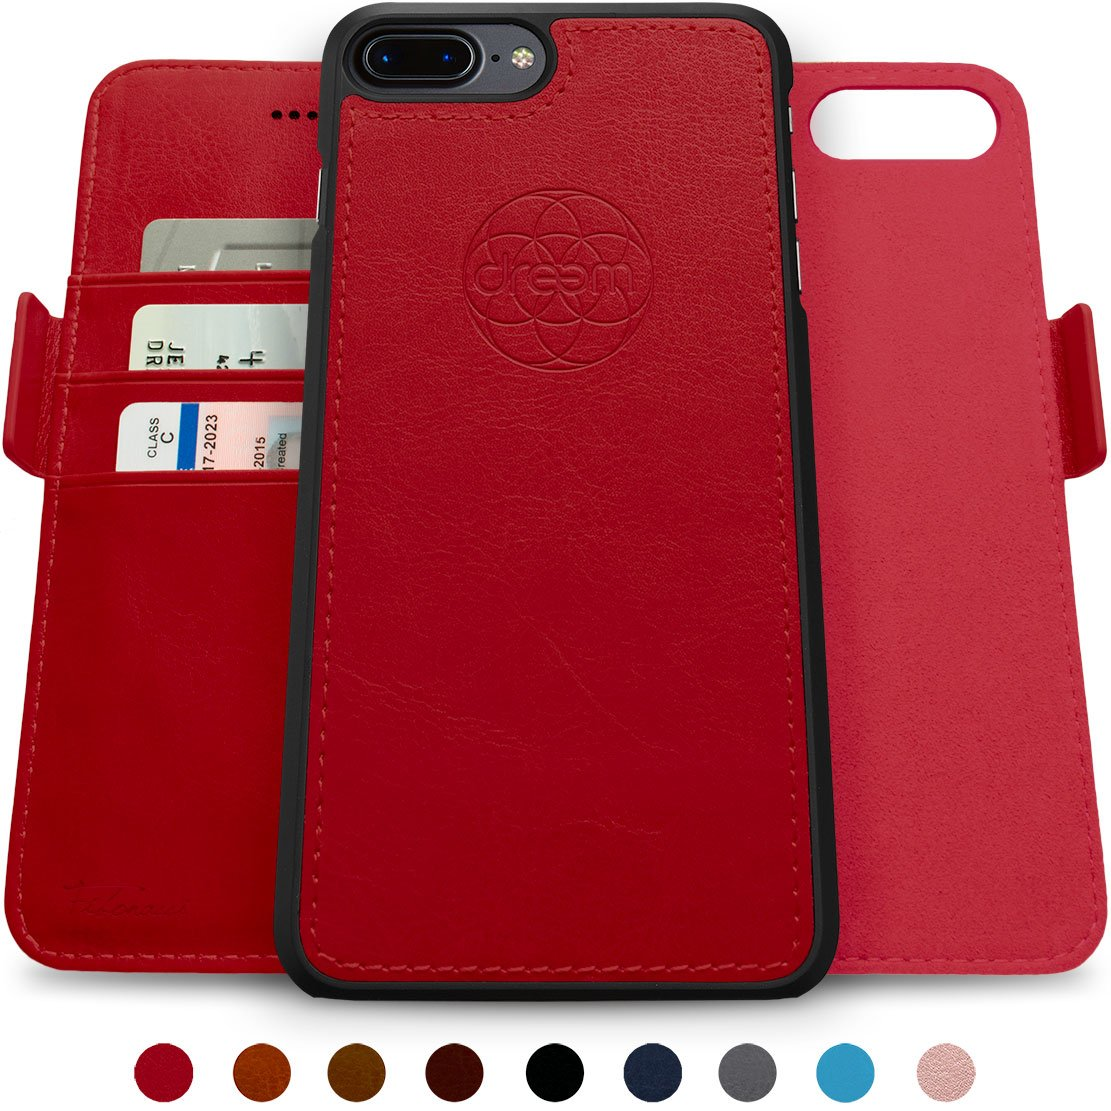 Dreem Fibonacci 2-in-1 Wallet-Case for iPhone 8 & 7, Magnetic Detachable Shock-Proof TPU Slim-Case, Allows Wireless Charging, RFID Protection, 2-Way Stand, Luxury Vegan Leather, Gift-Box - Red